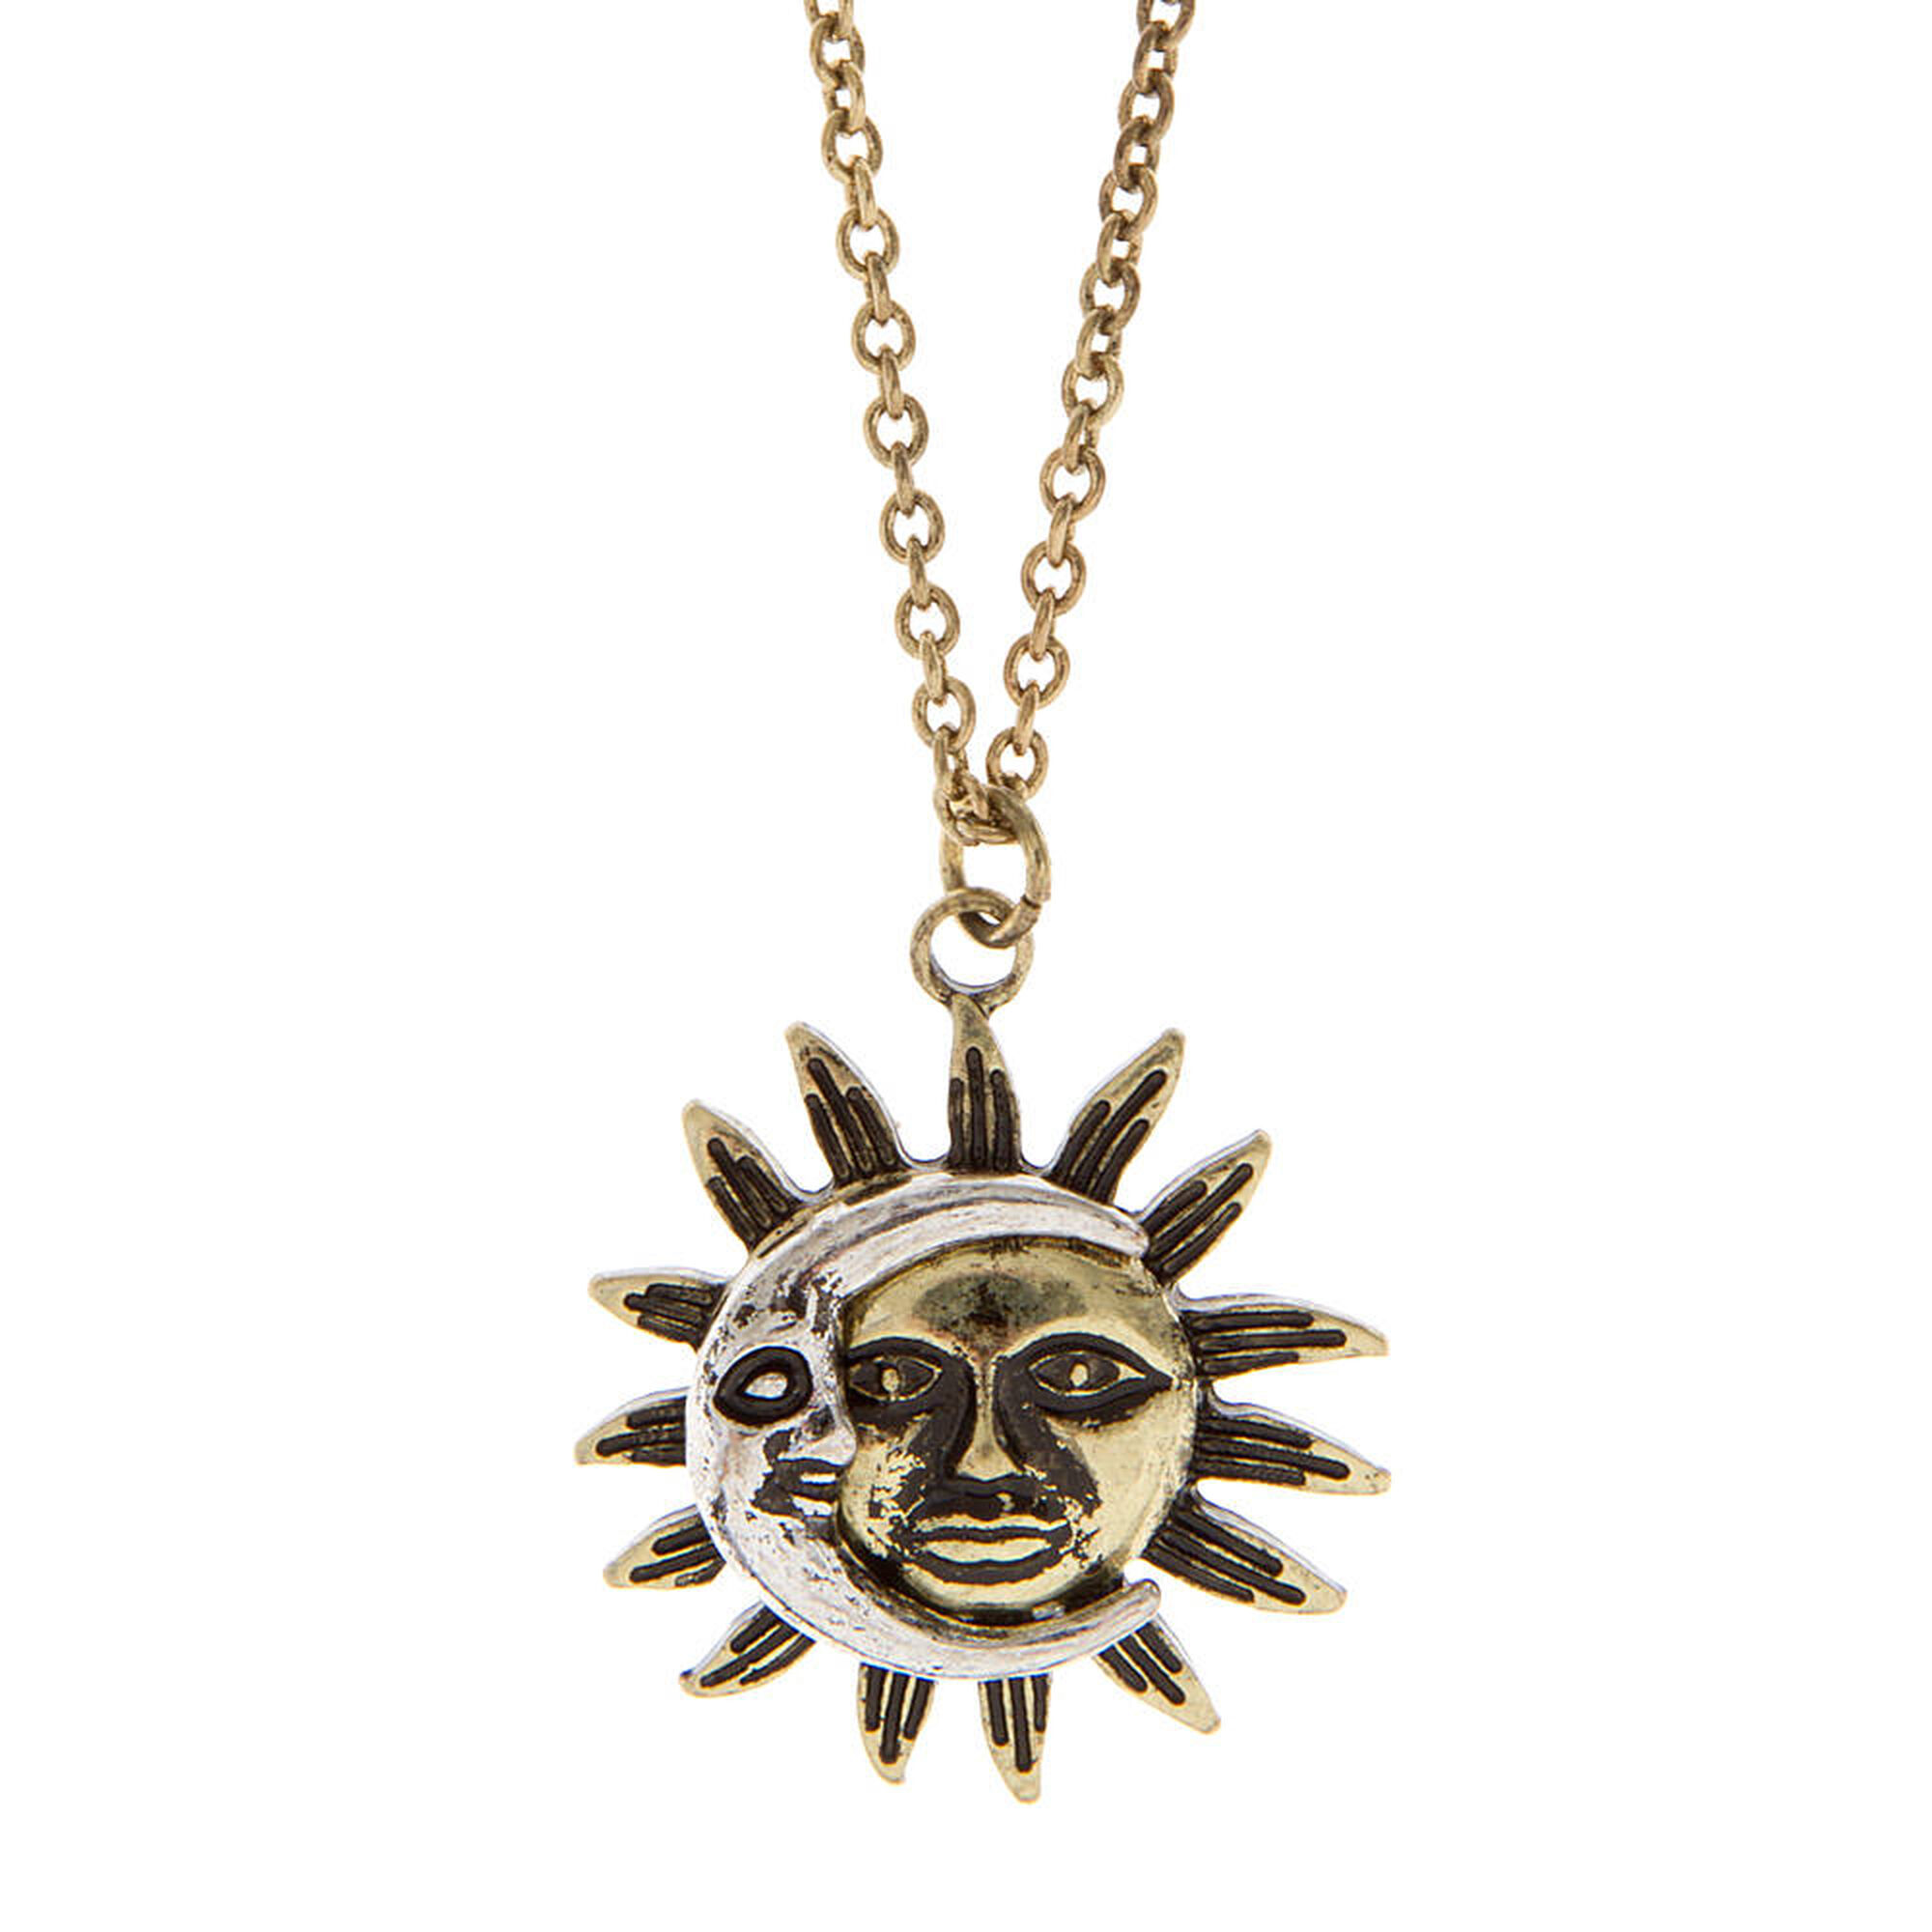 karryo operandi sun other by necklace vintage gold large karry moda o ysl